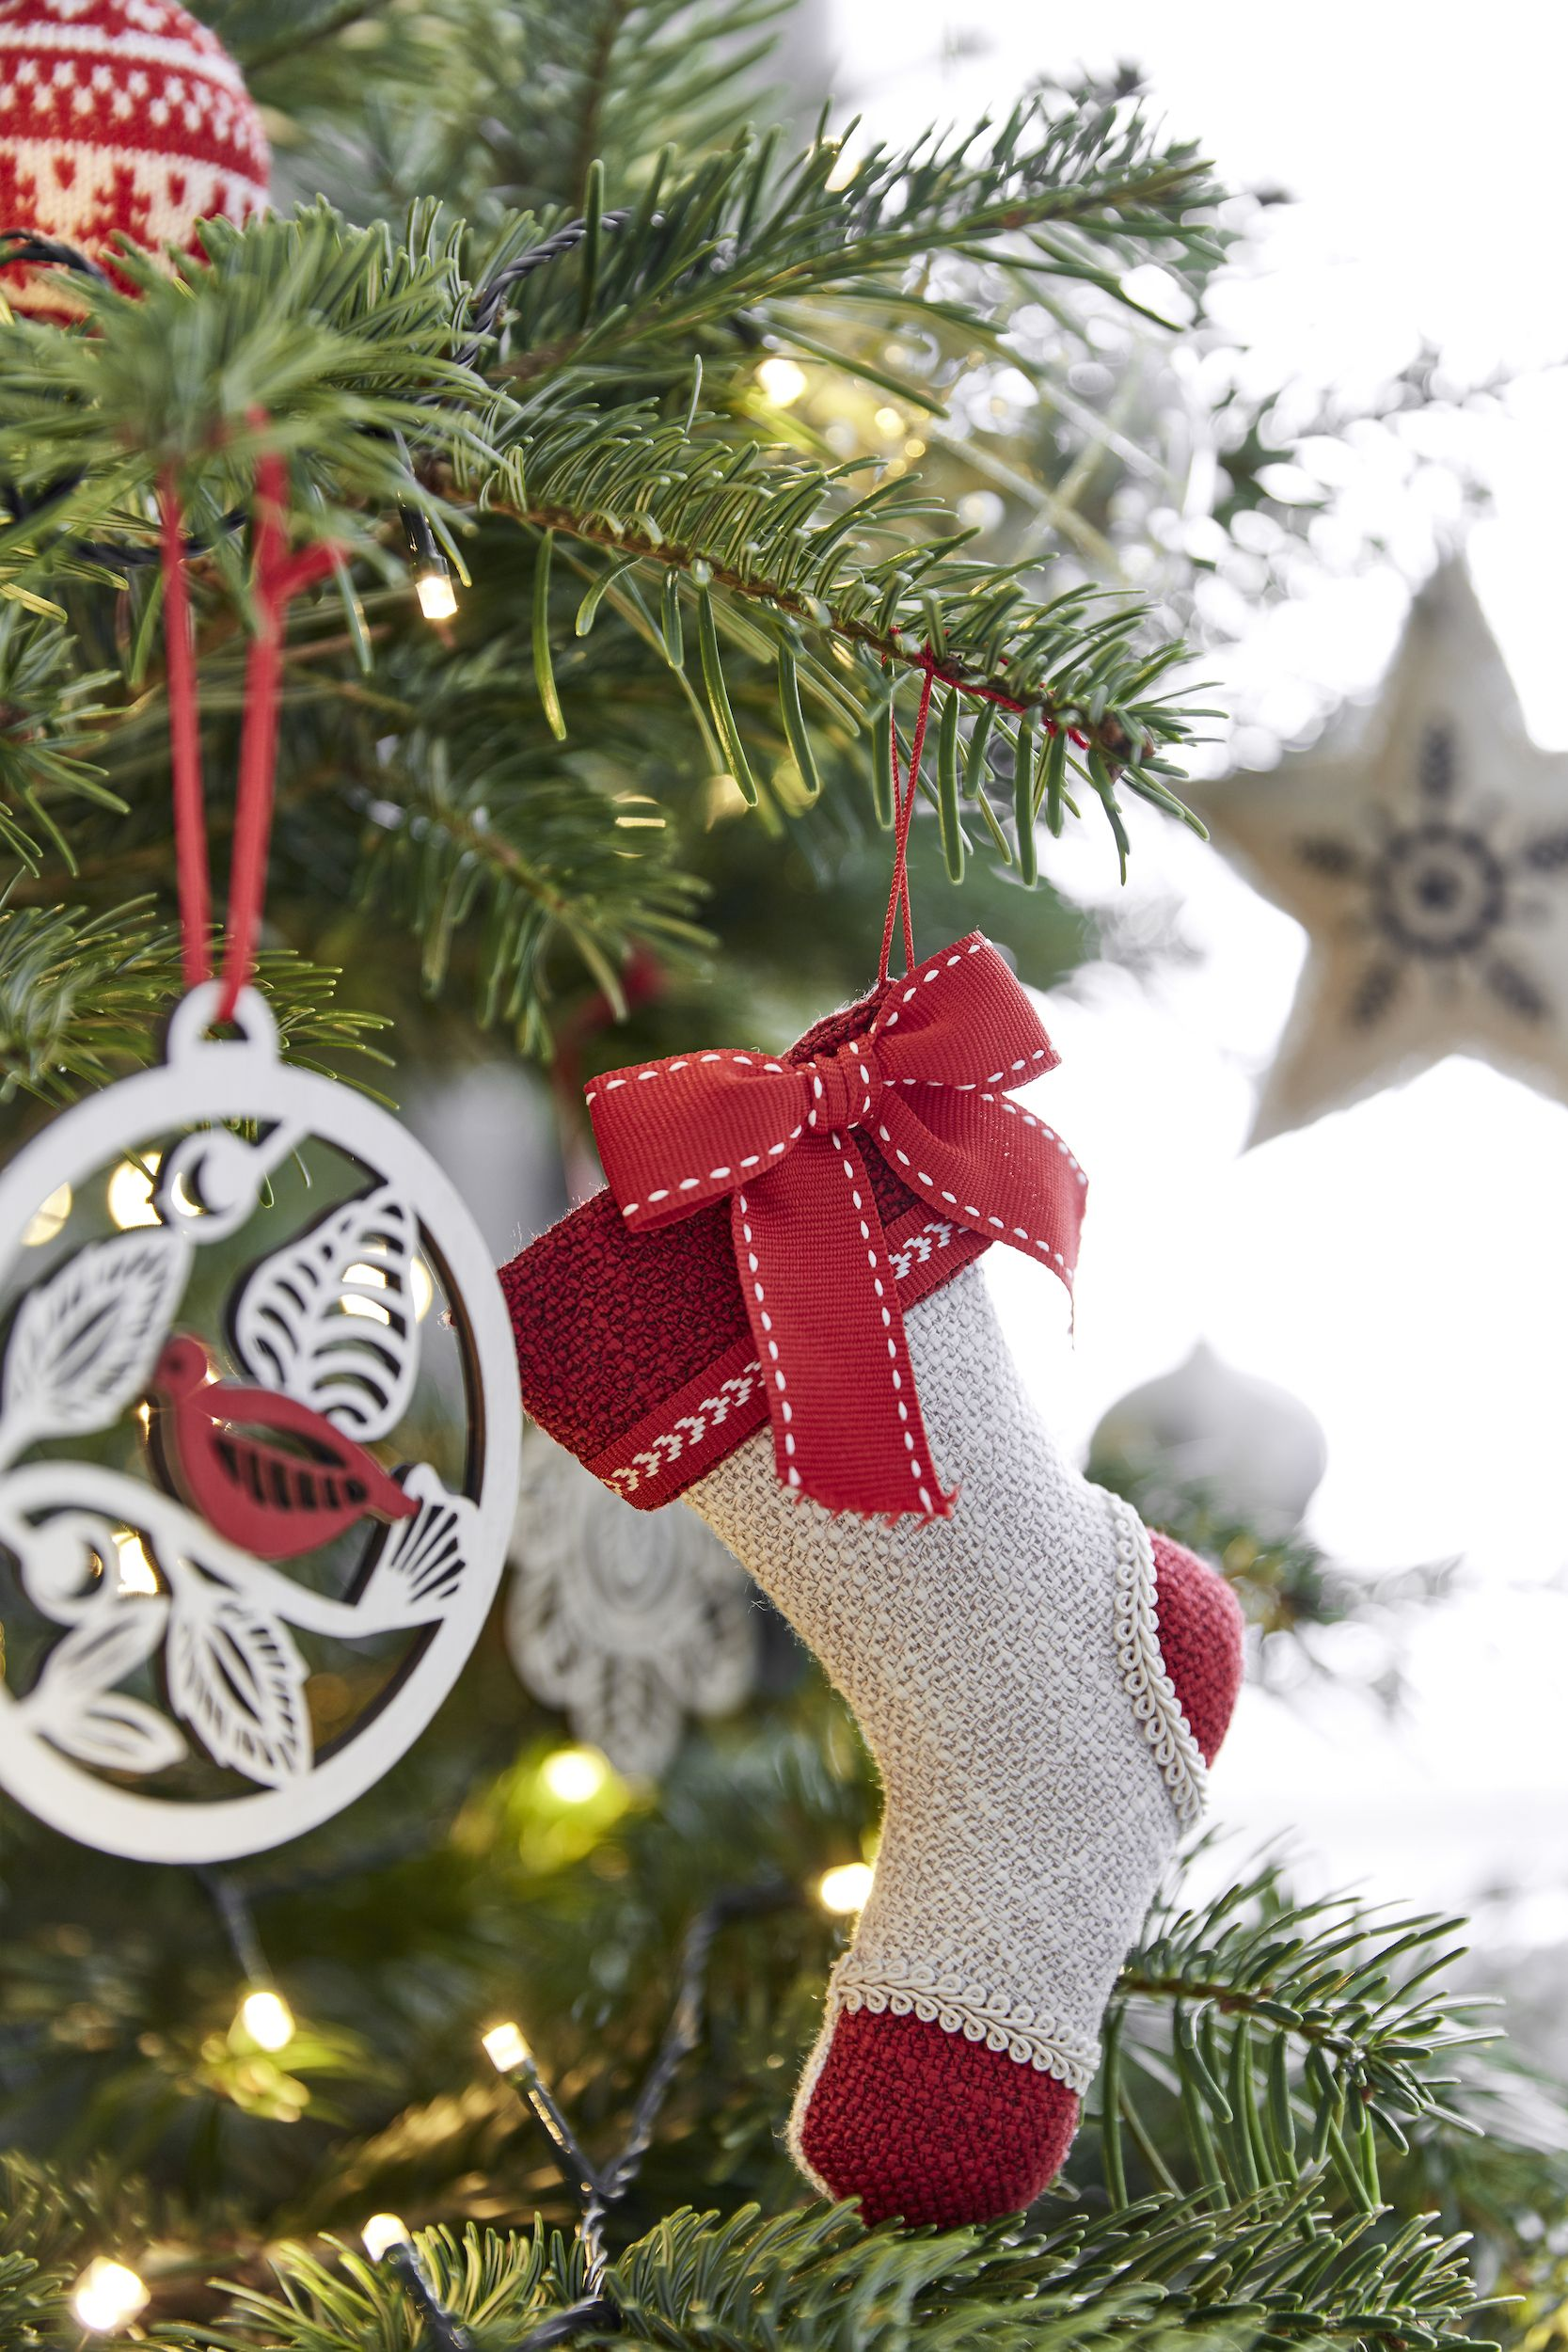 When To Take Christmas Tree Down Decorations Twelfth Night